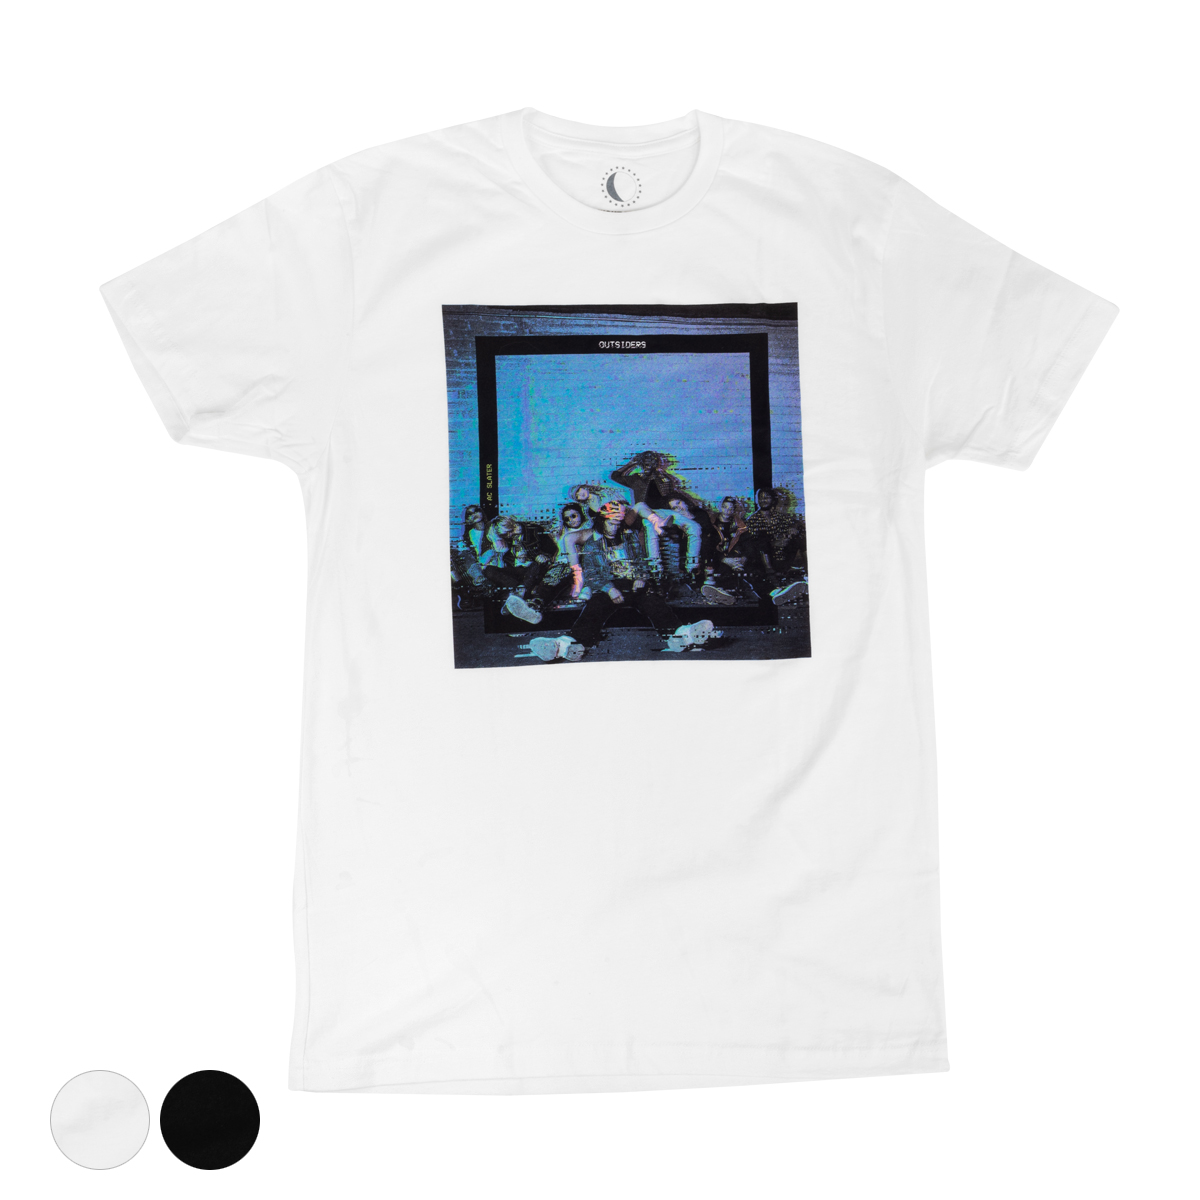 Outsiders Album Cover T-Shirt